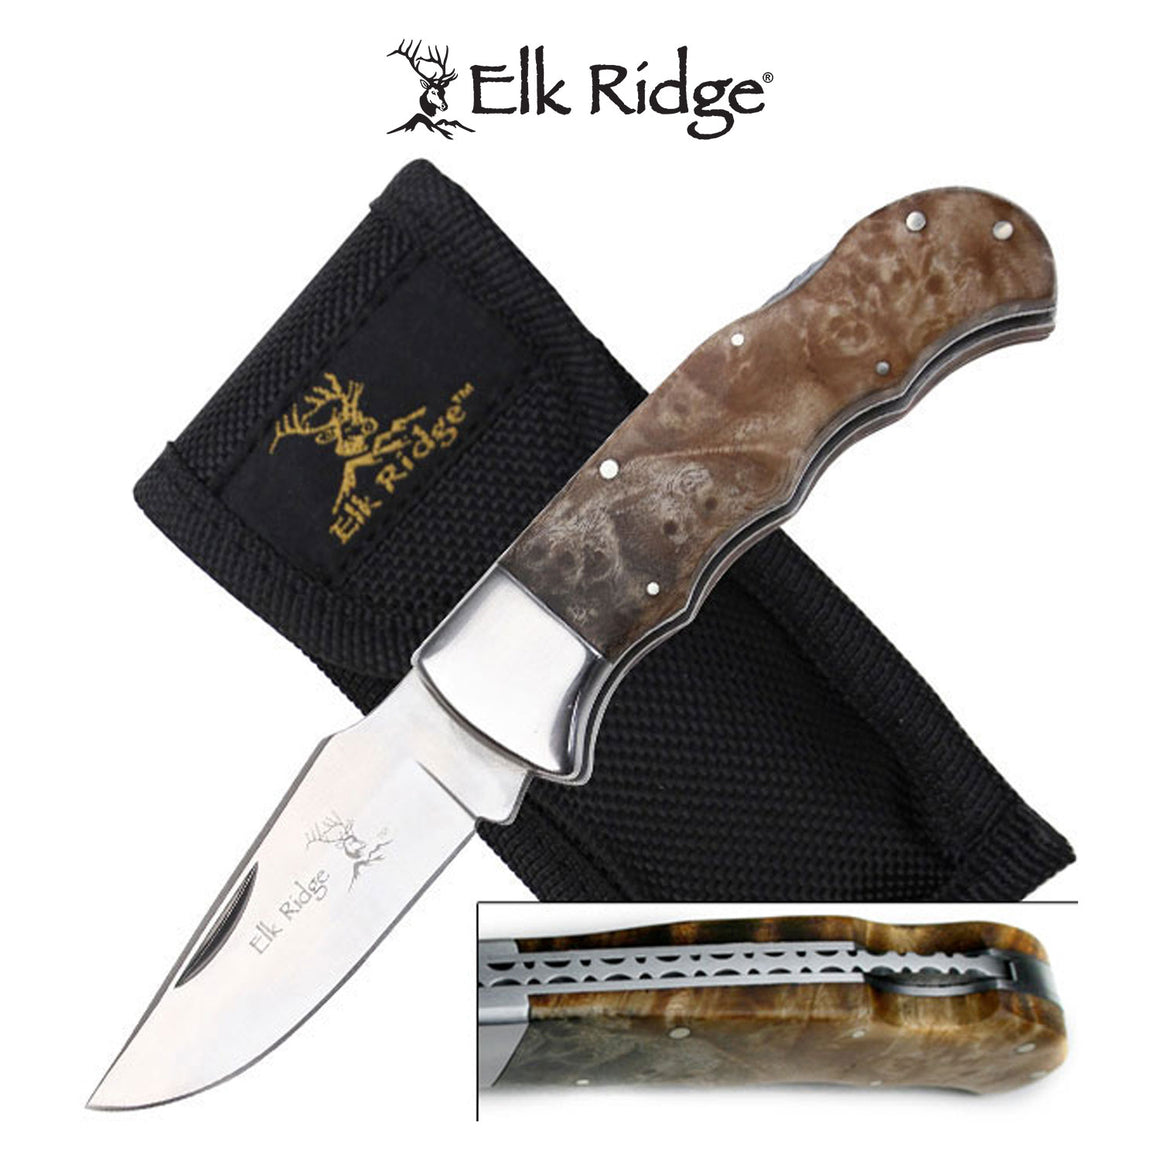 Elk Ridge ER-138 Gentleman's Knife